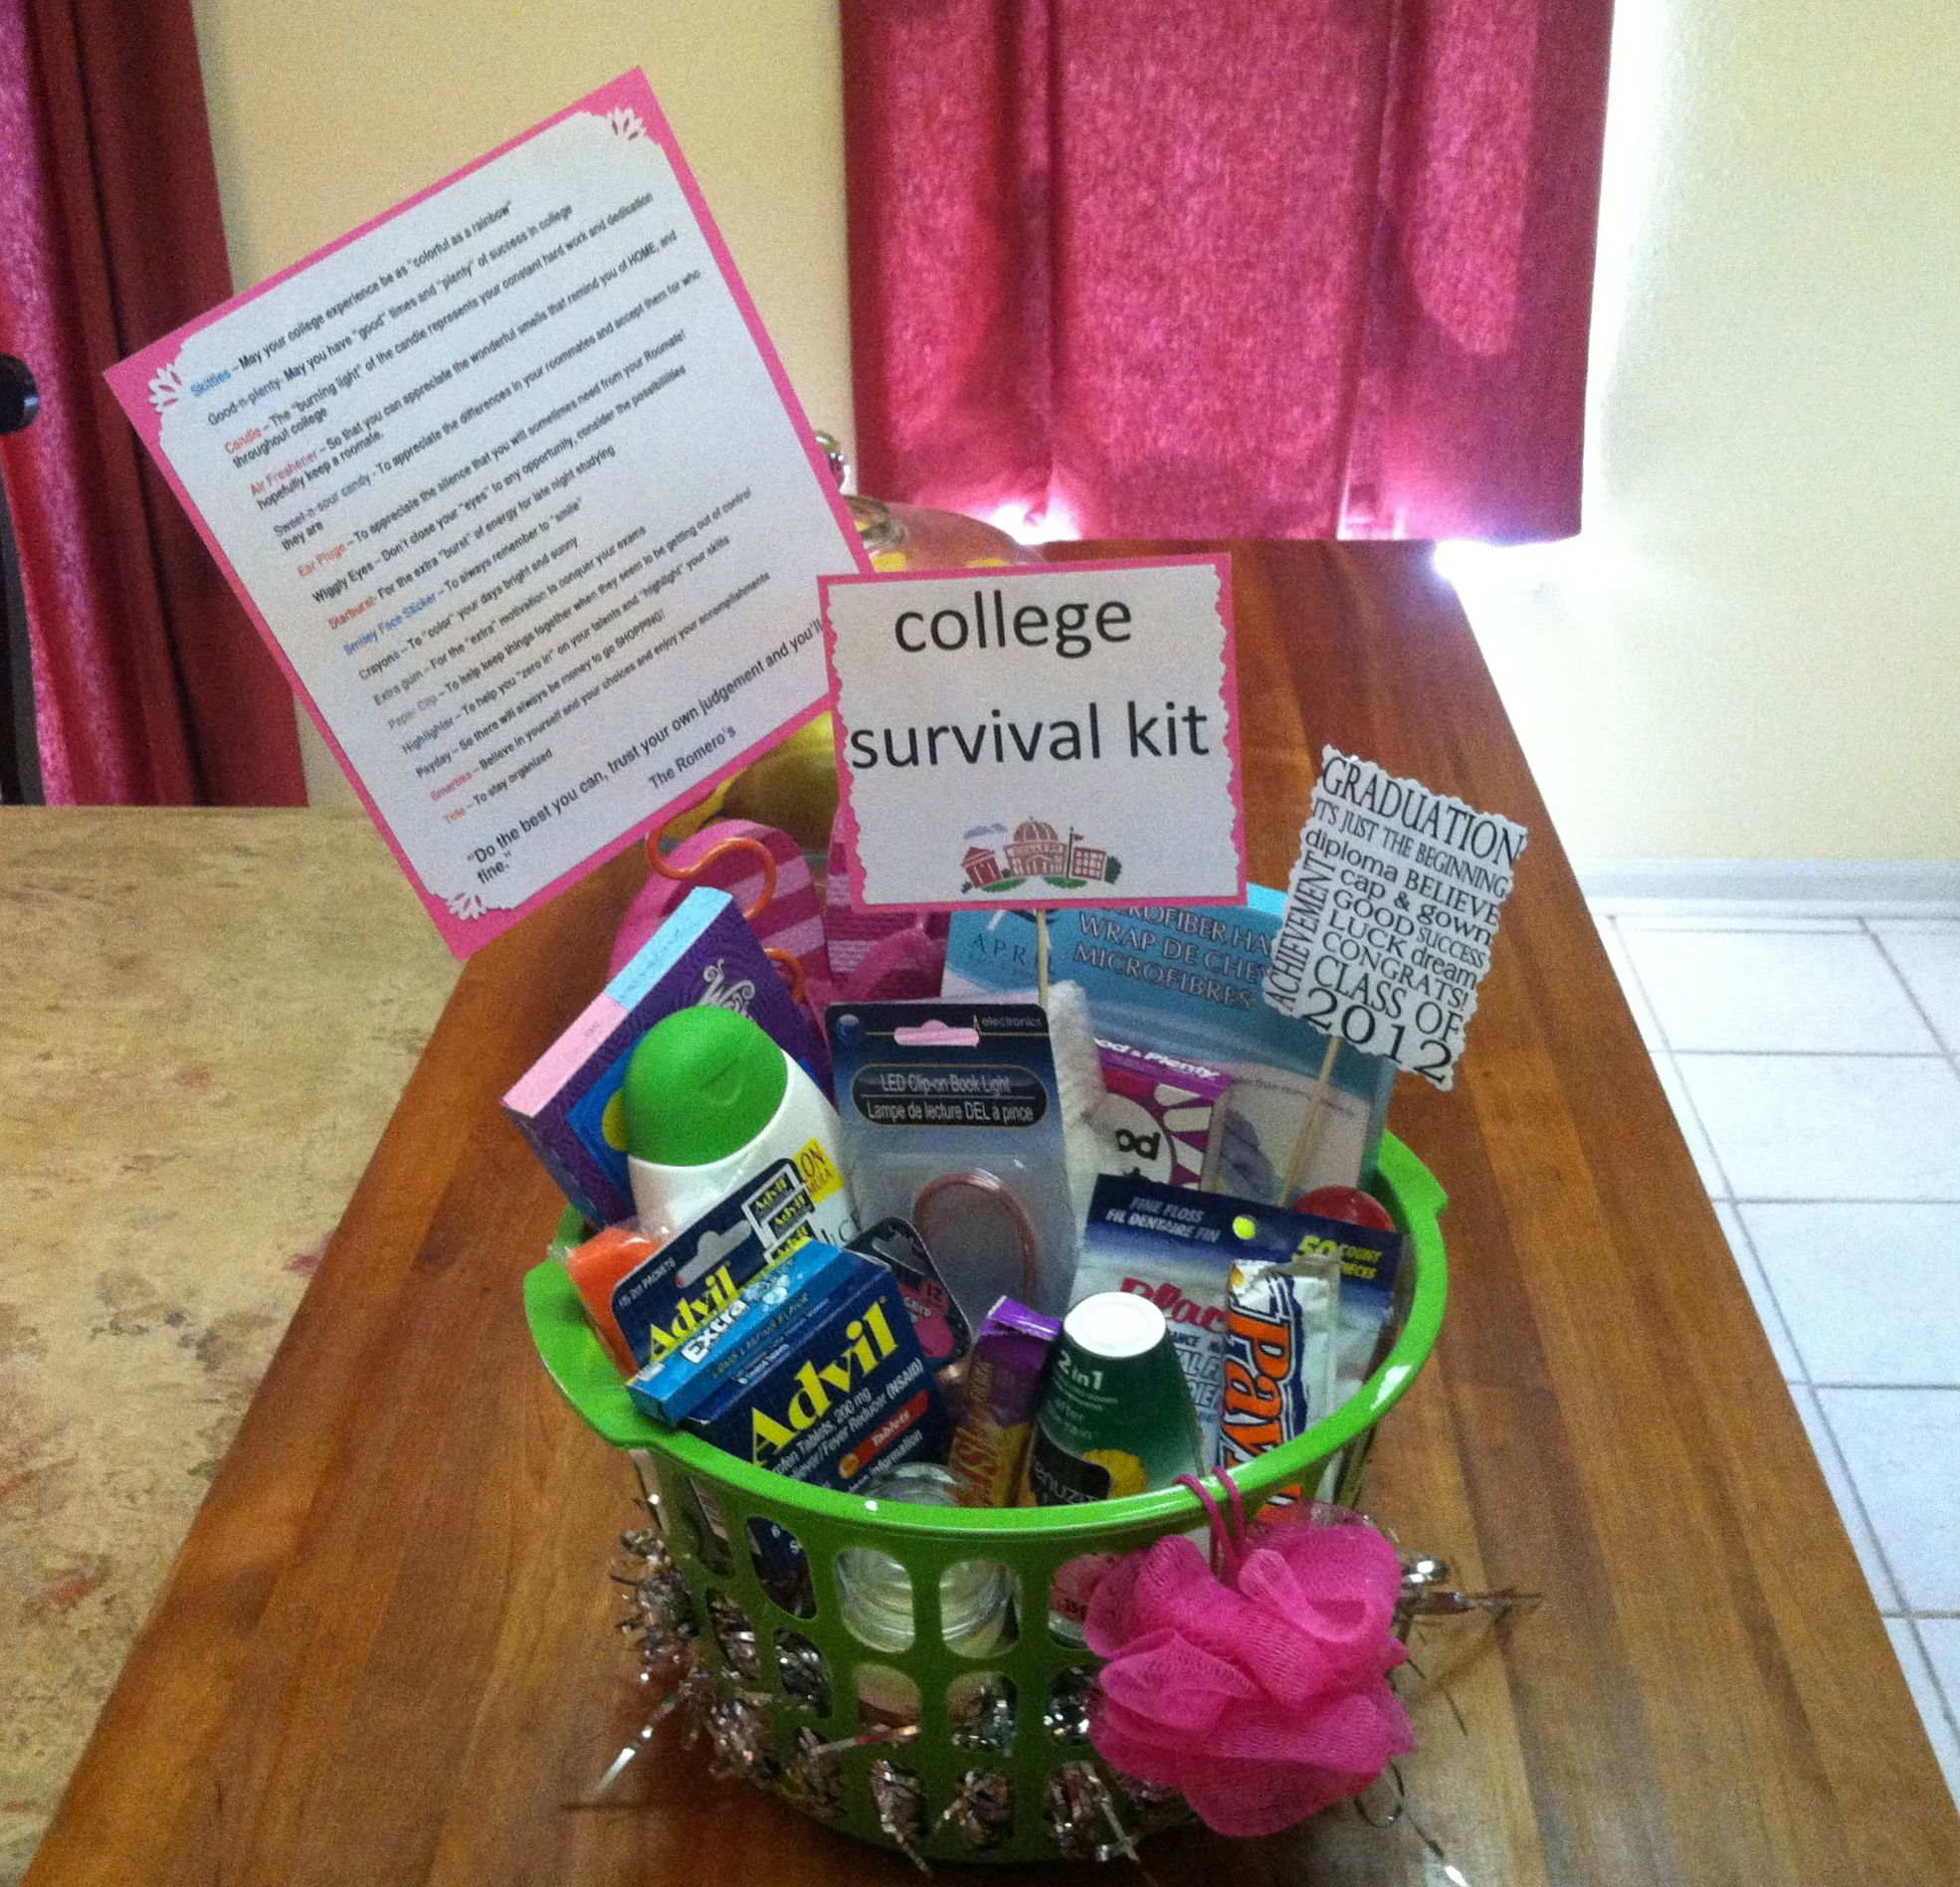 Pics photos funny college survival kit ideas - College Survival Kit Made These For Graduations 2012